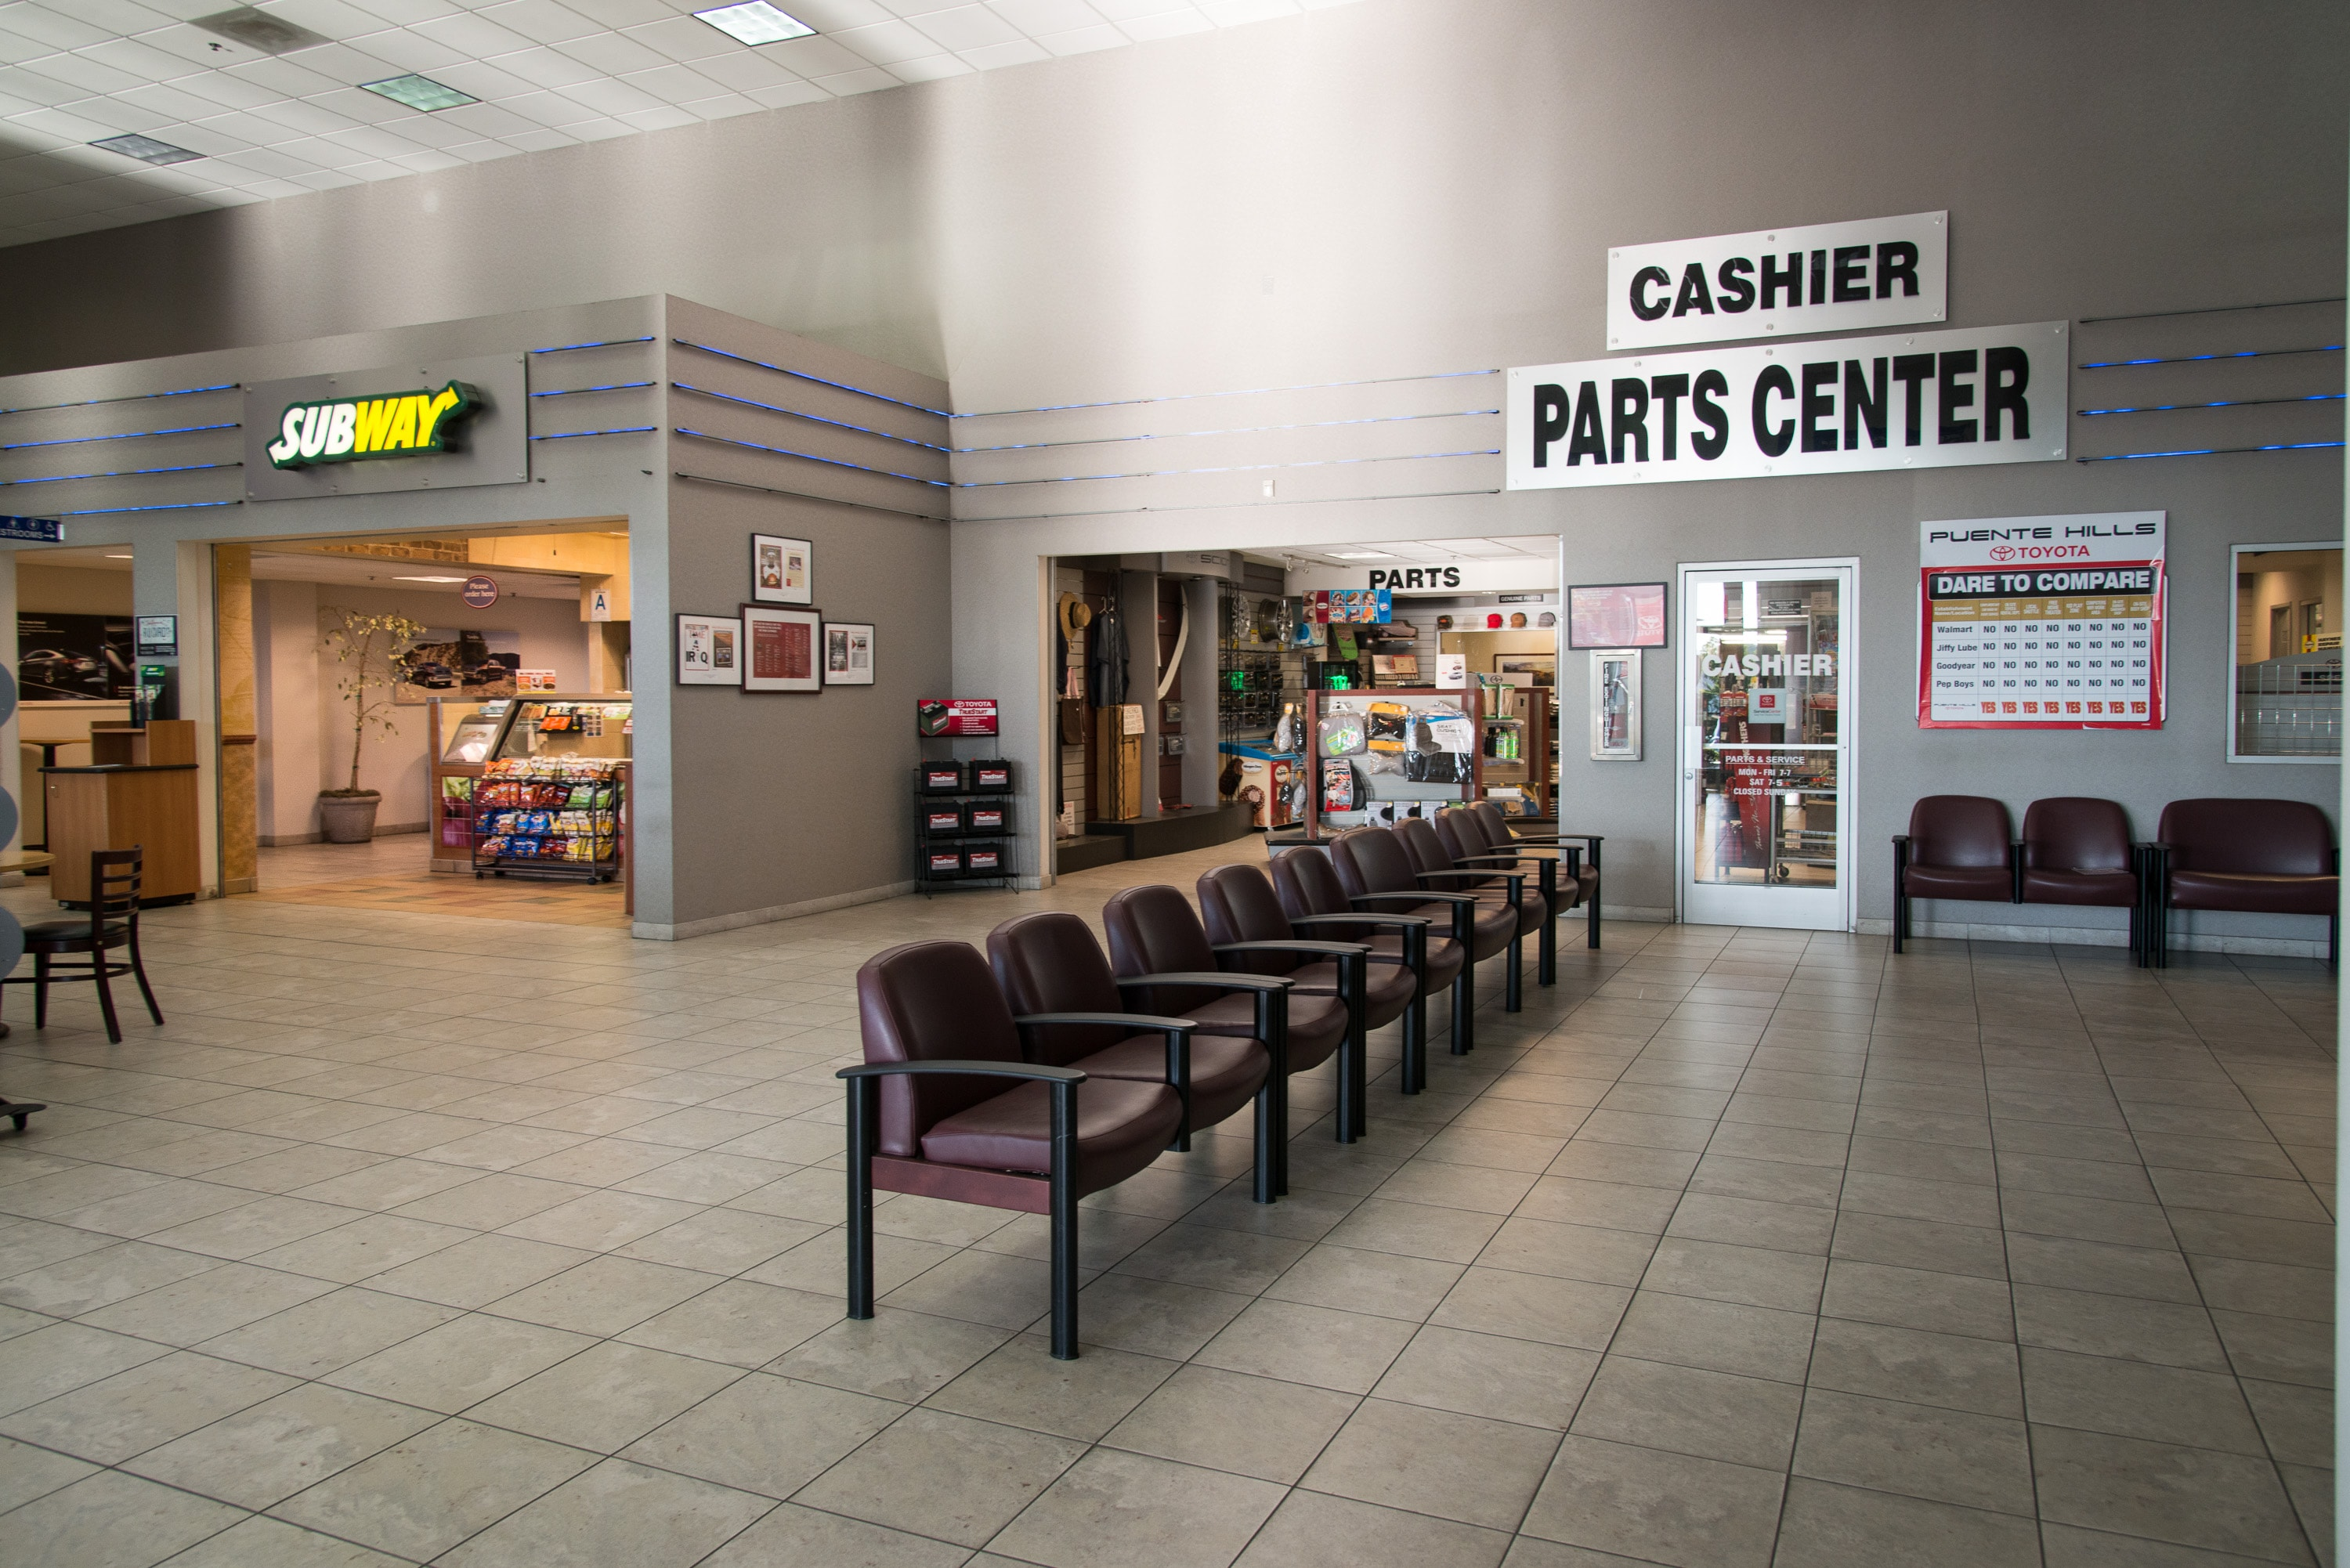 Welcome to the parts center at puente hills toyota